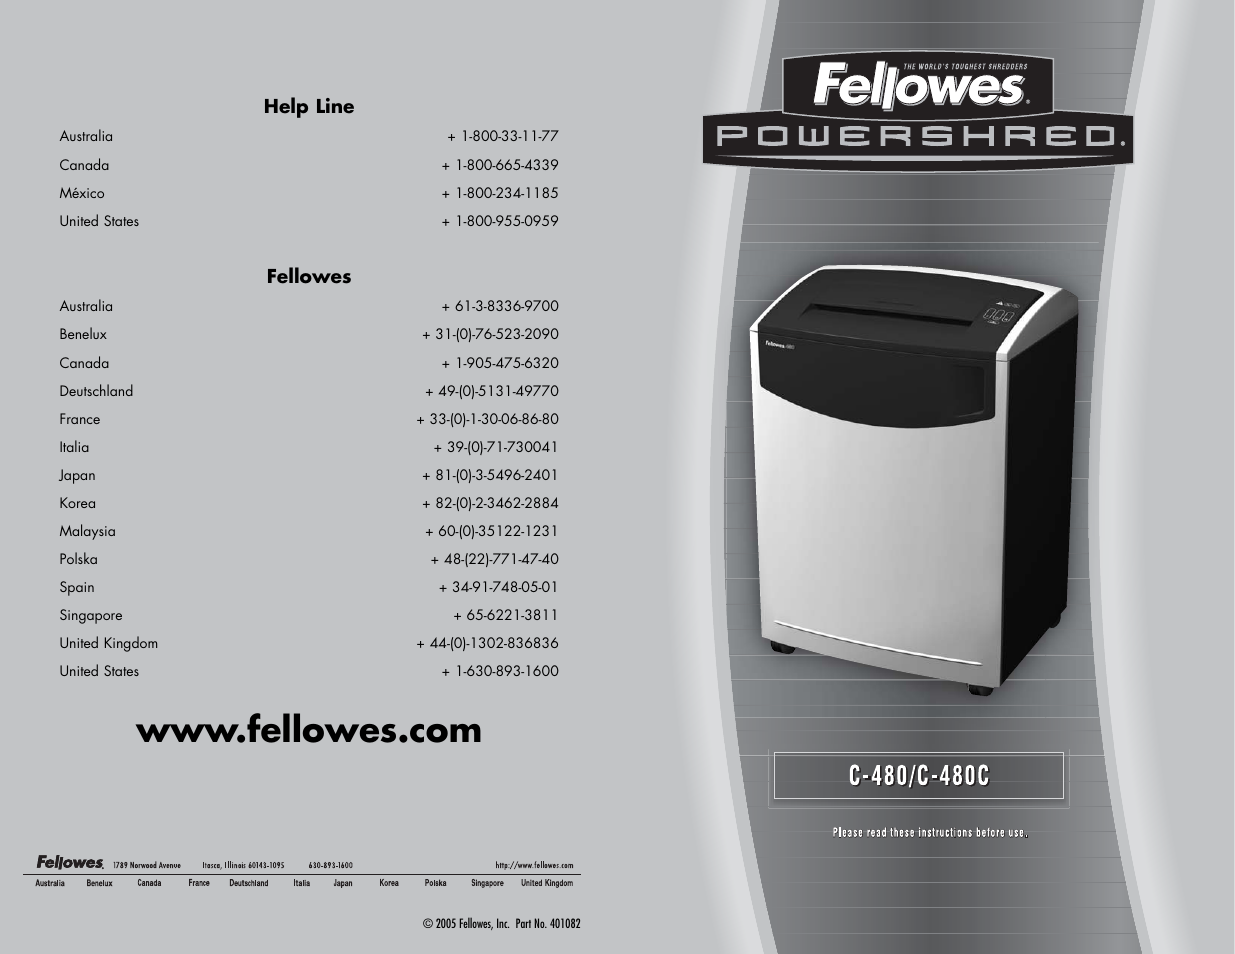 fellowes powershred c 480c user manual 2 pages also for rh manualsdir com User Manual User Manual